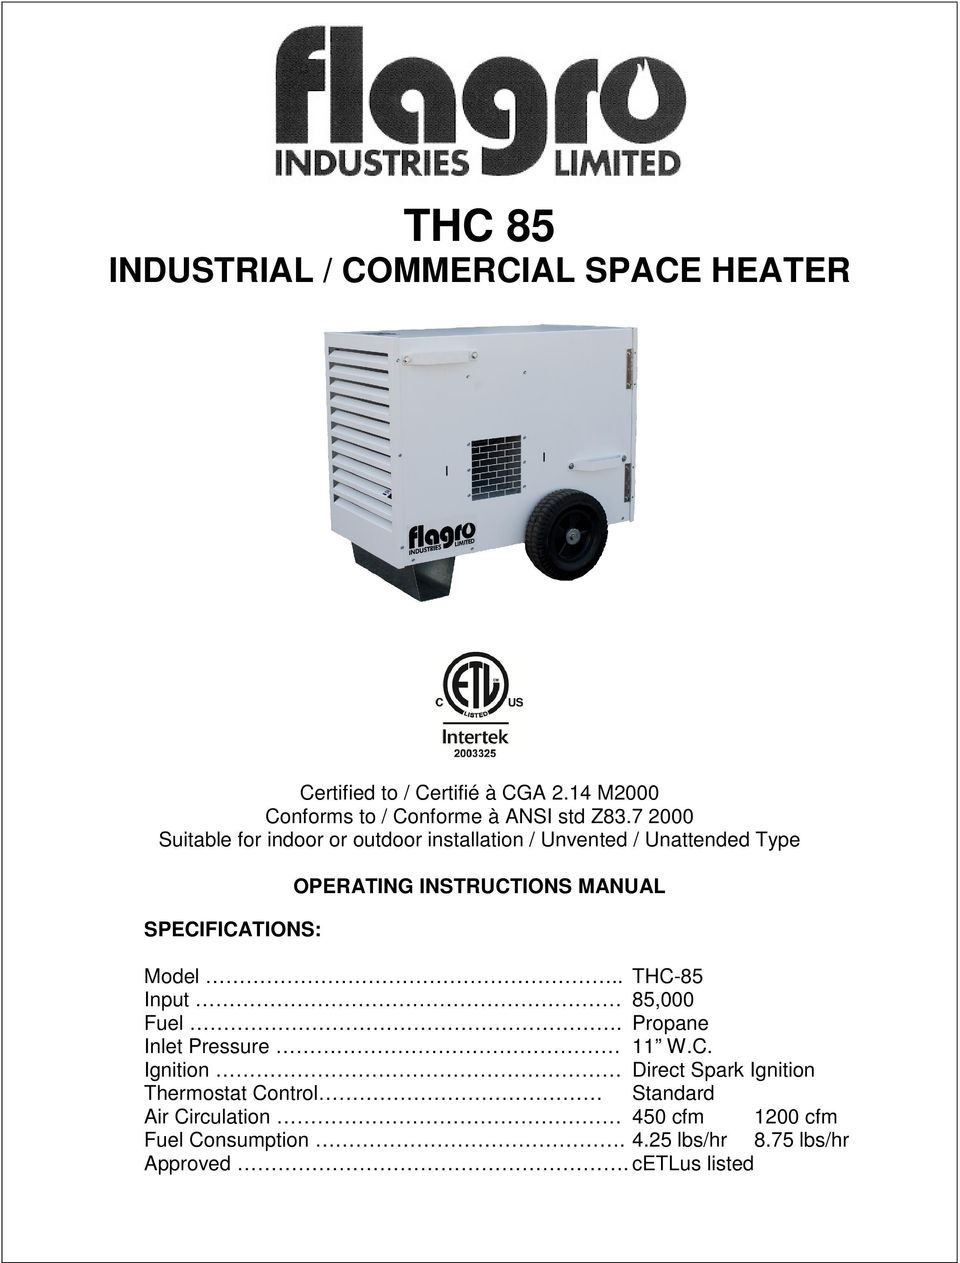 7 2000 Suitable for indoor or outdoor installation / Unvented / Unattended Type SPECIFICATIONS: OPERATING